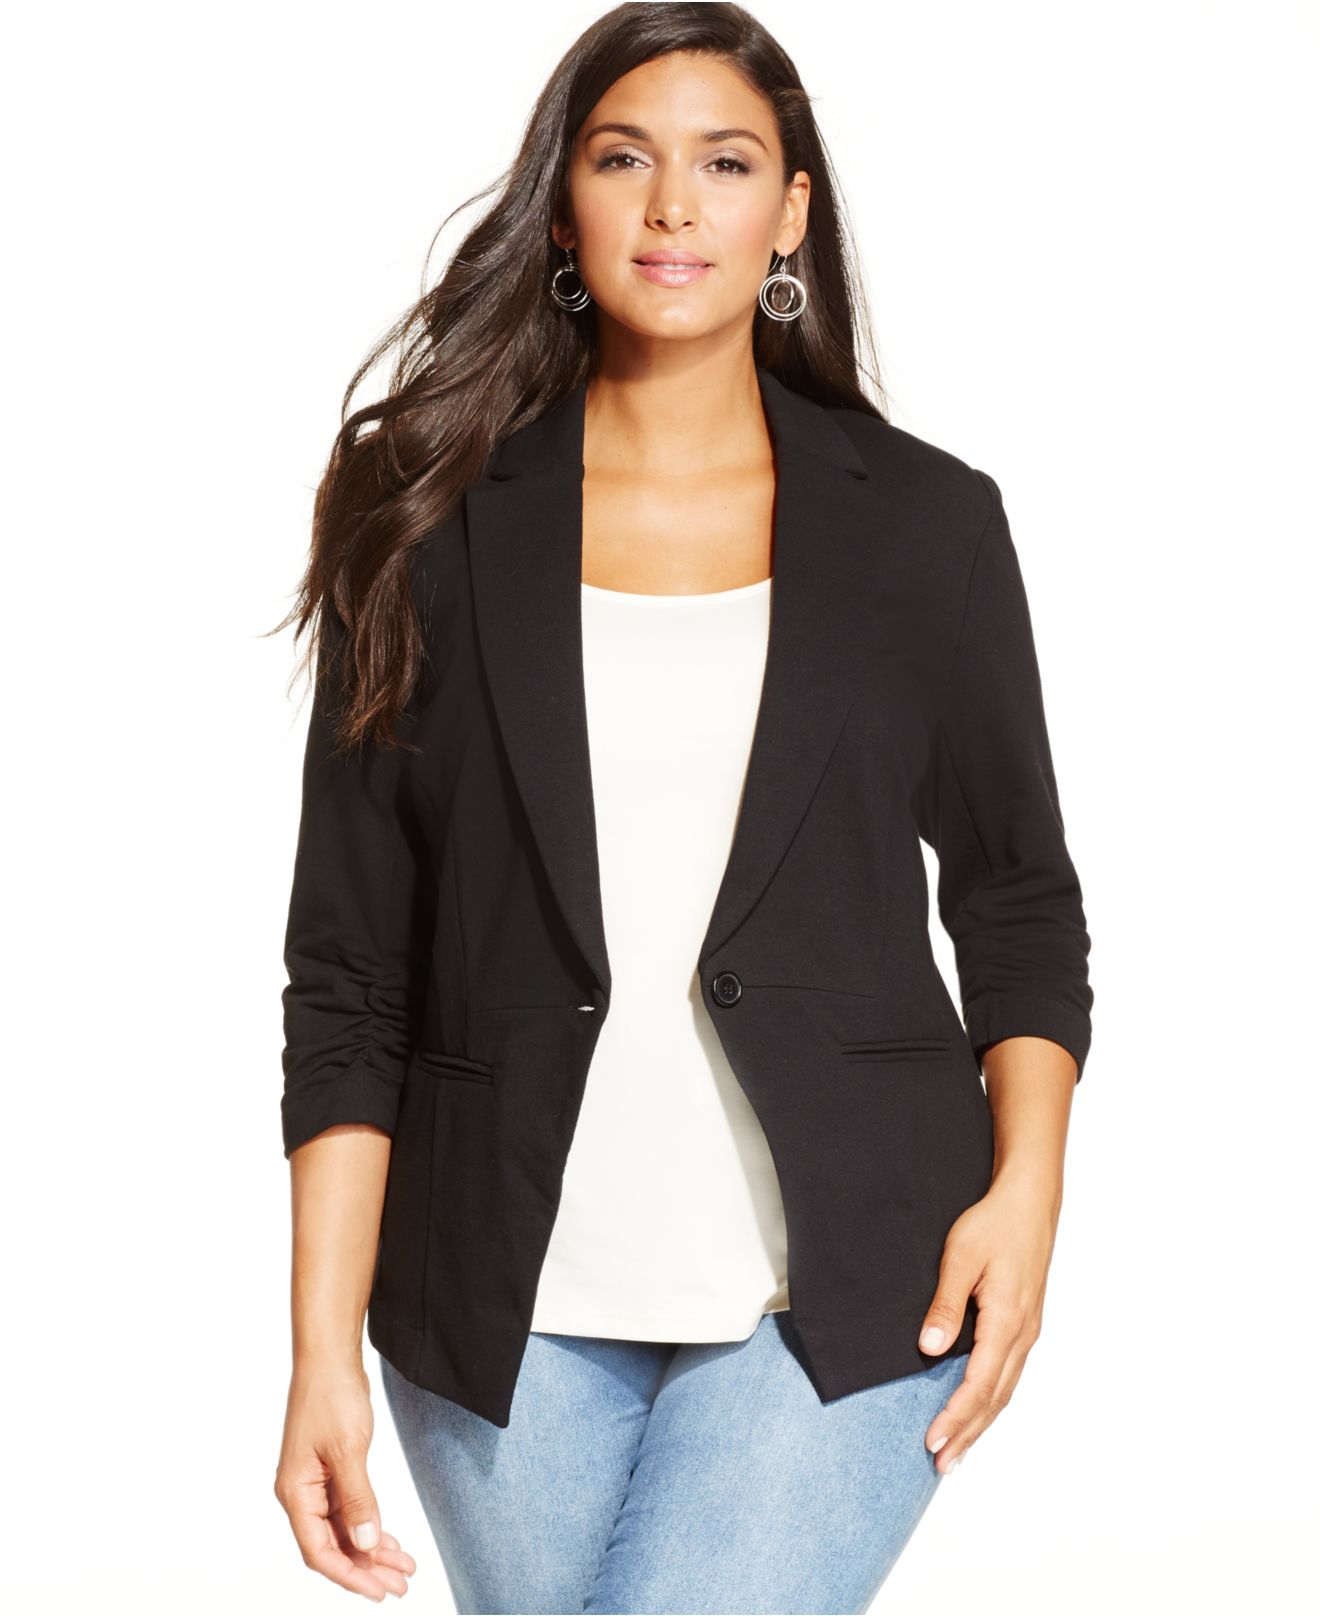 Buying the plus size blazers